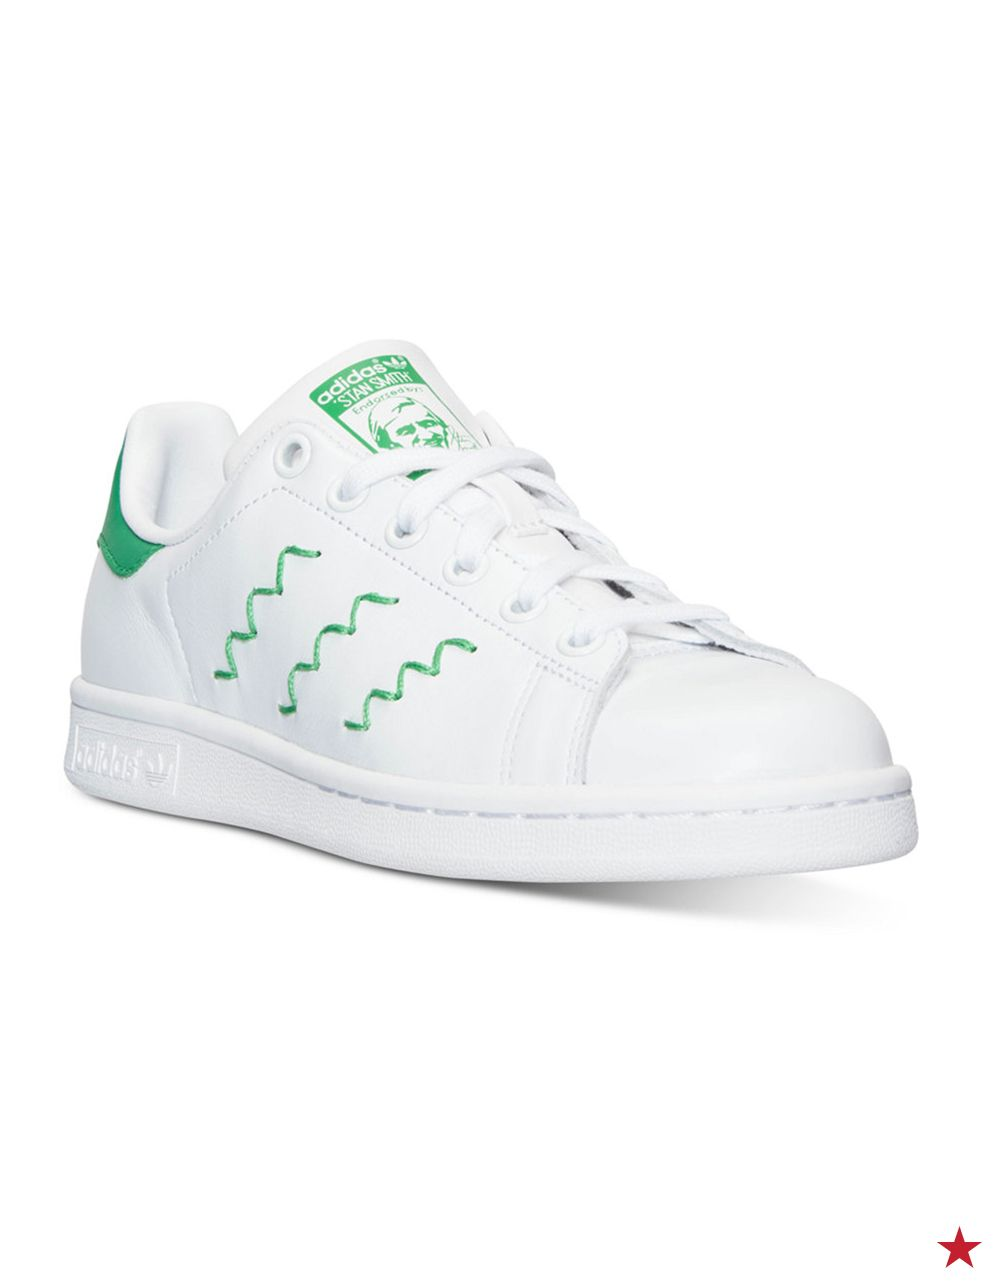 premium selection 1b8ee 1912c These Stan Smith sneakers need to be at the top of every ...